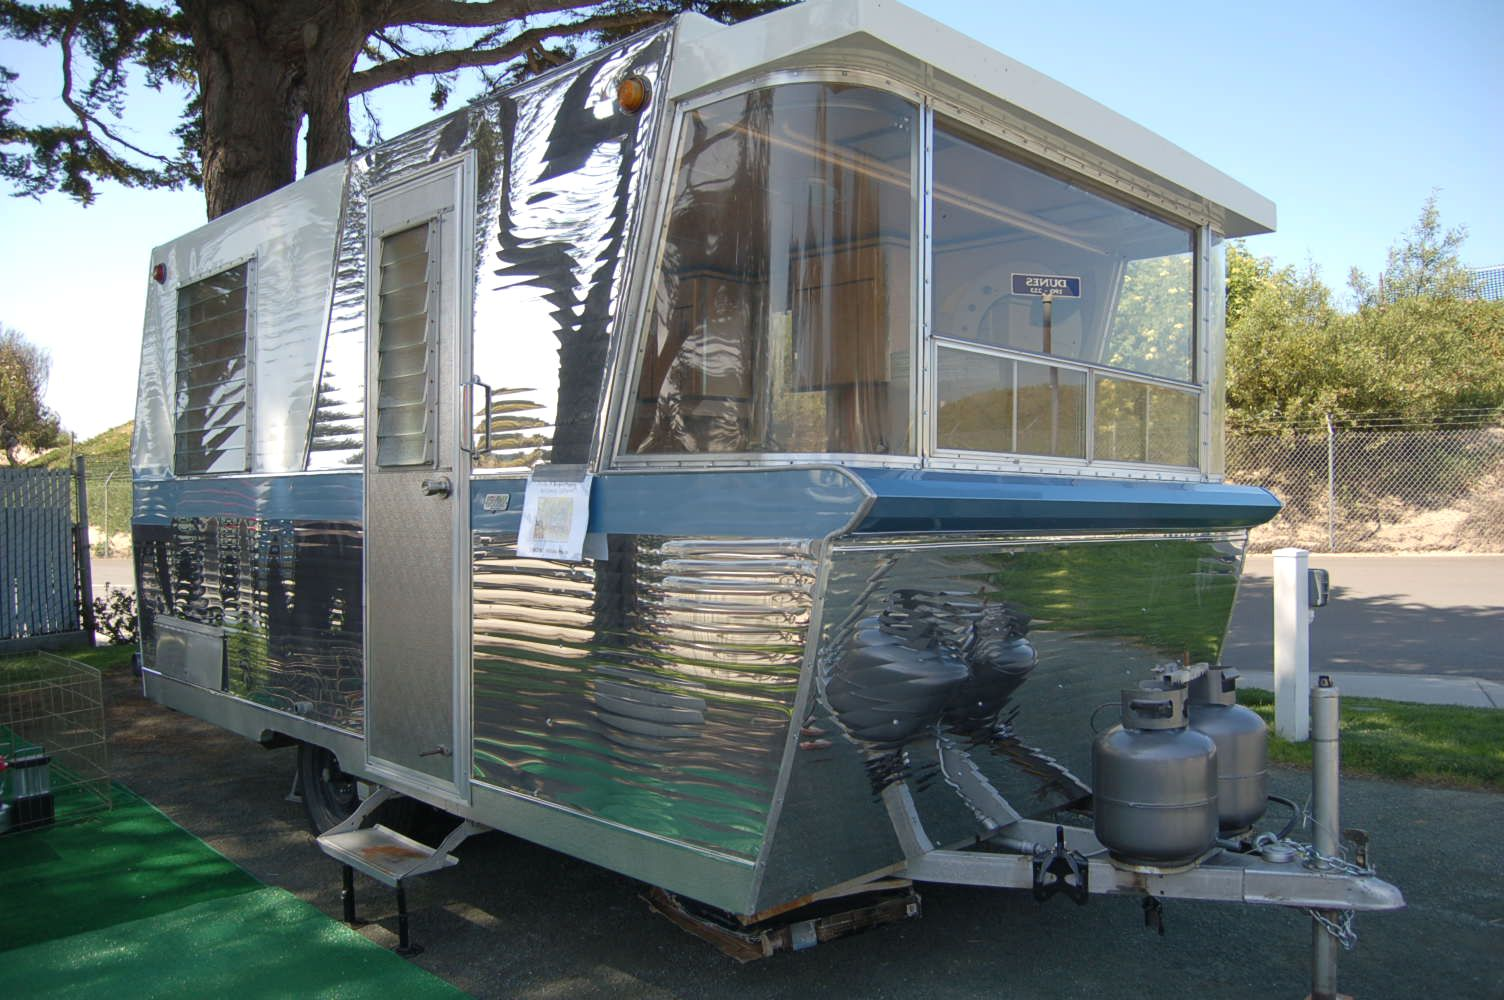 I Find These 1960 S Holiday House Trailers Very Interesting Http Oldtrailer Com Images 1960 Holiday Hous Vintage Travel Trailers Holiday Home Vintage Camper